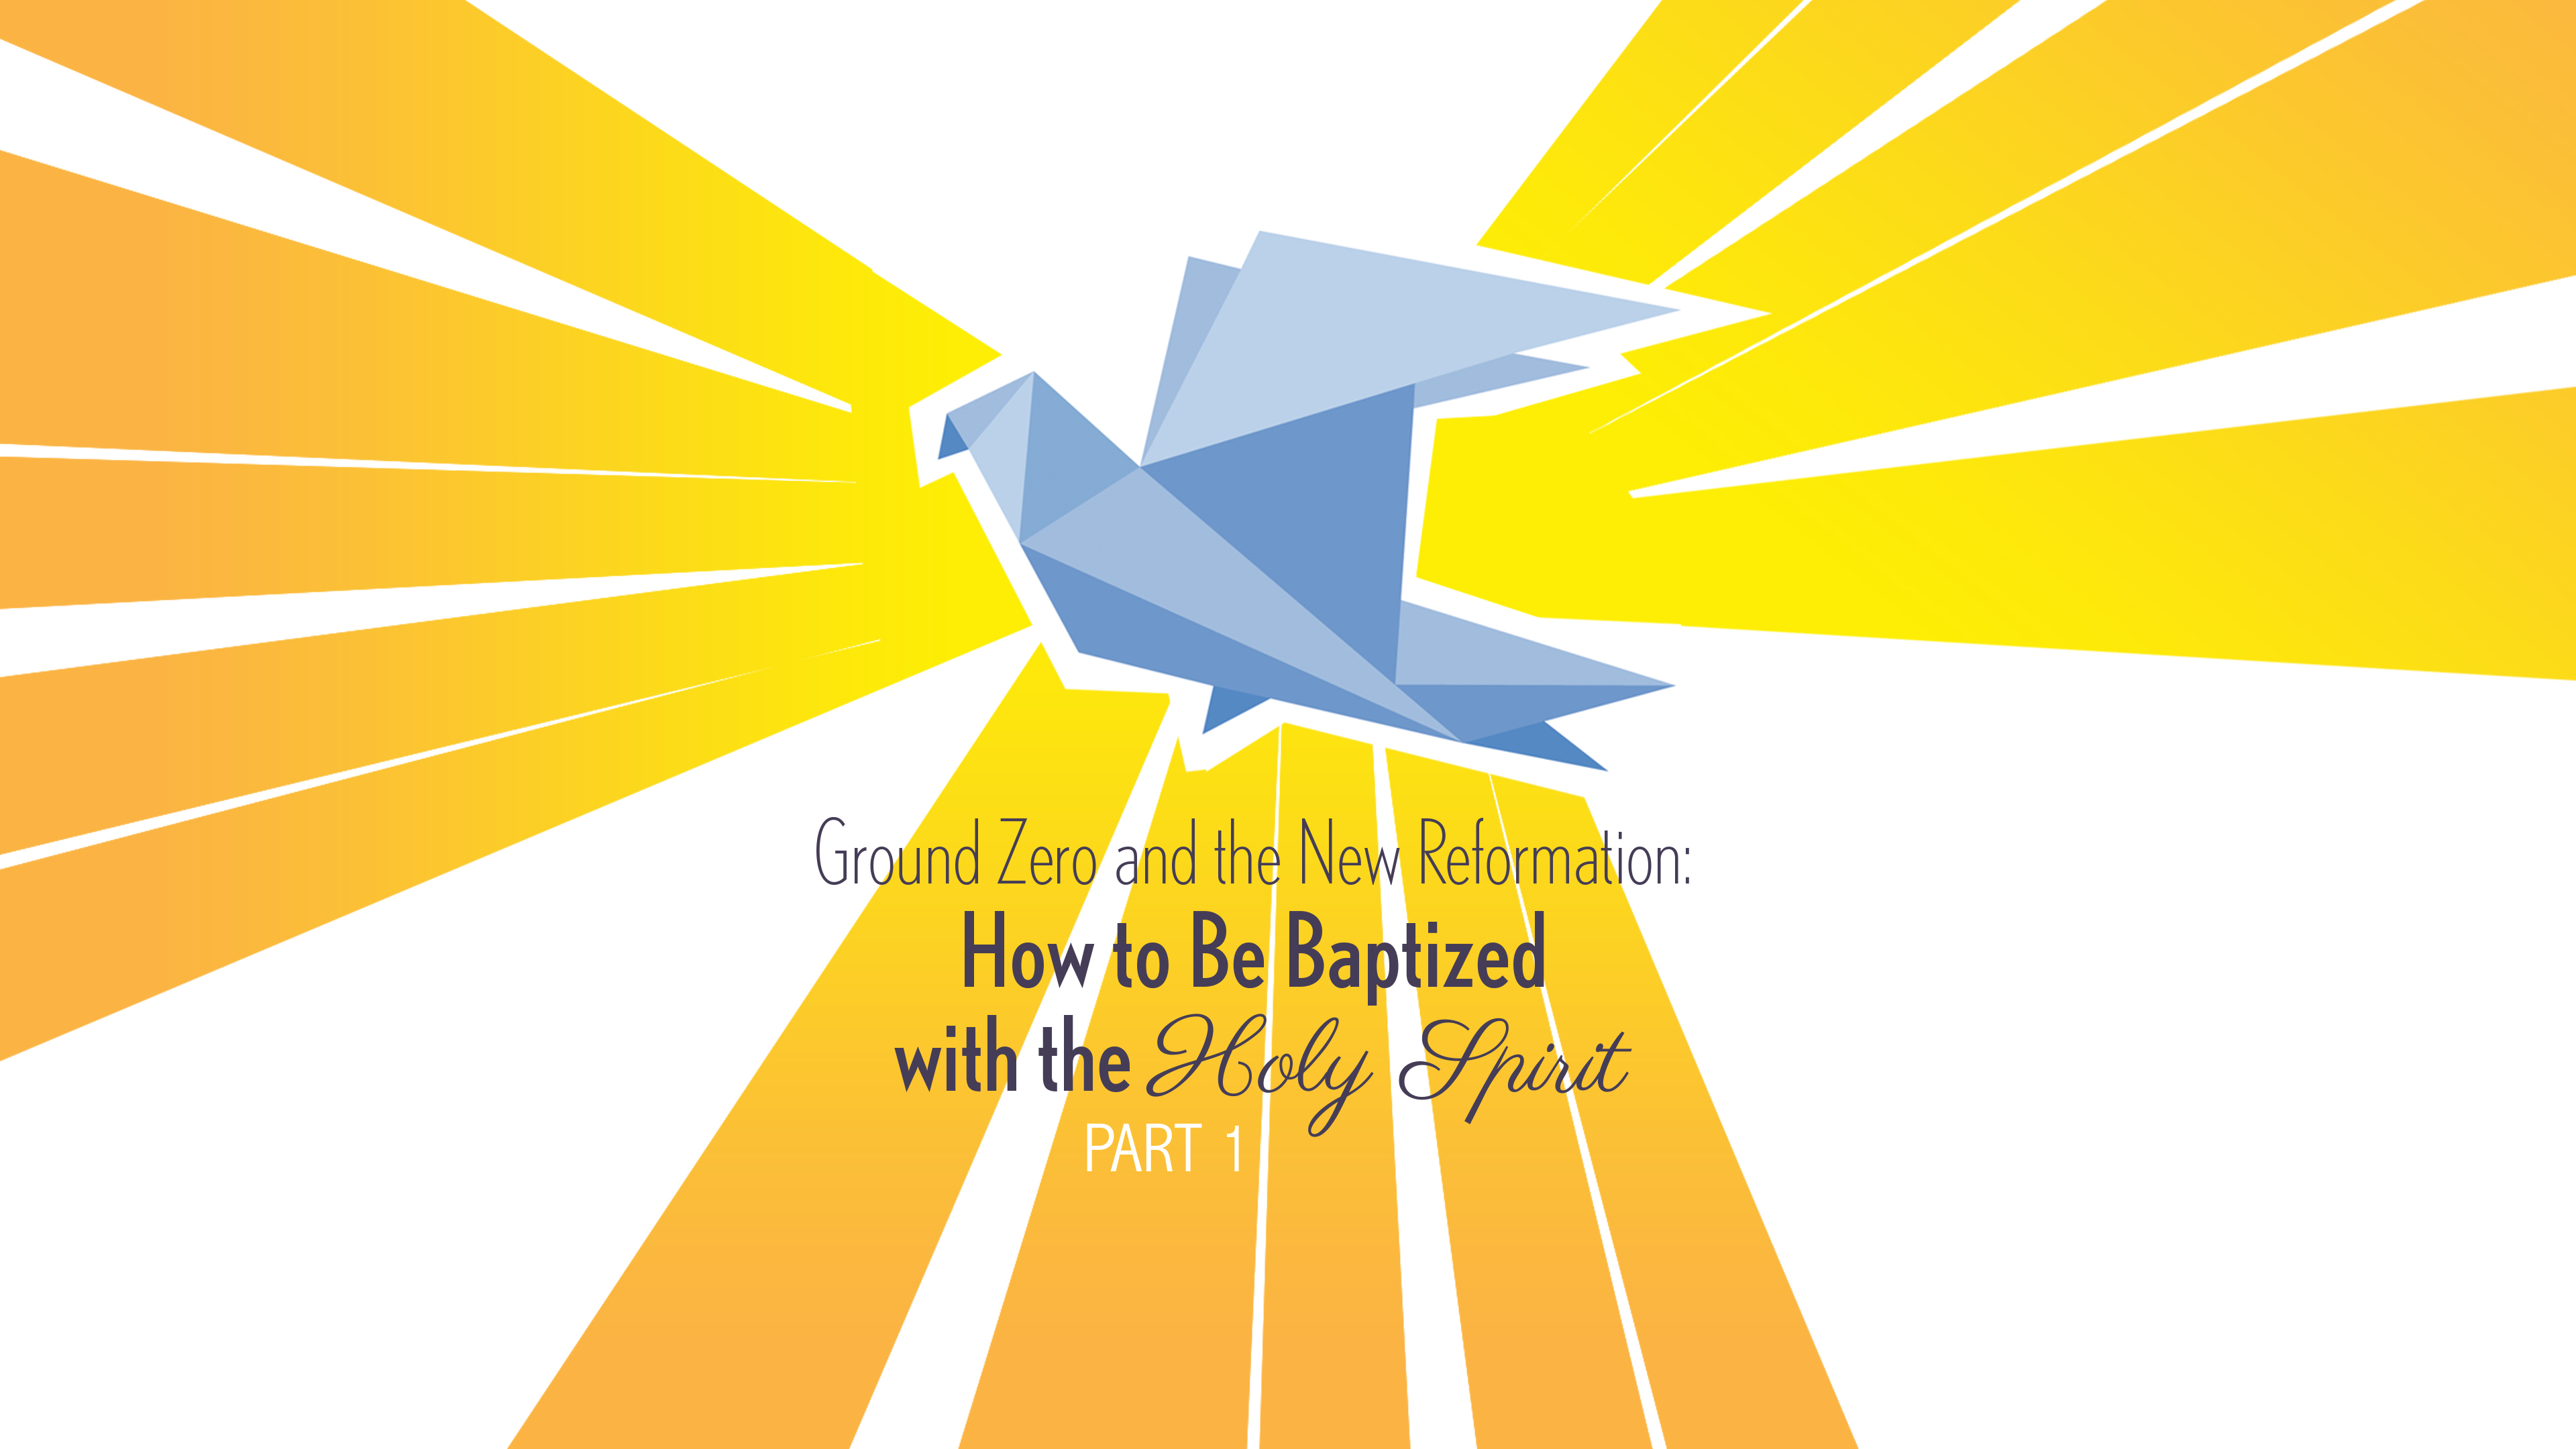 How to Be Baptized with the Holy Spirit - Part 1 | Pioneer Memorial